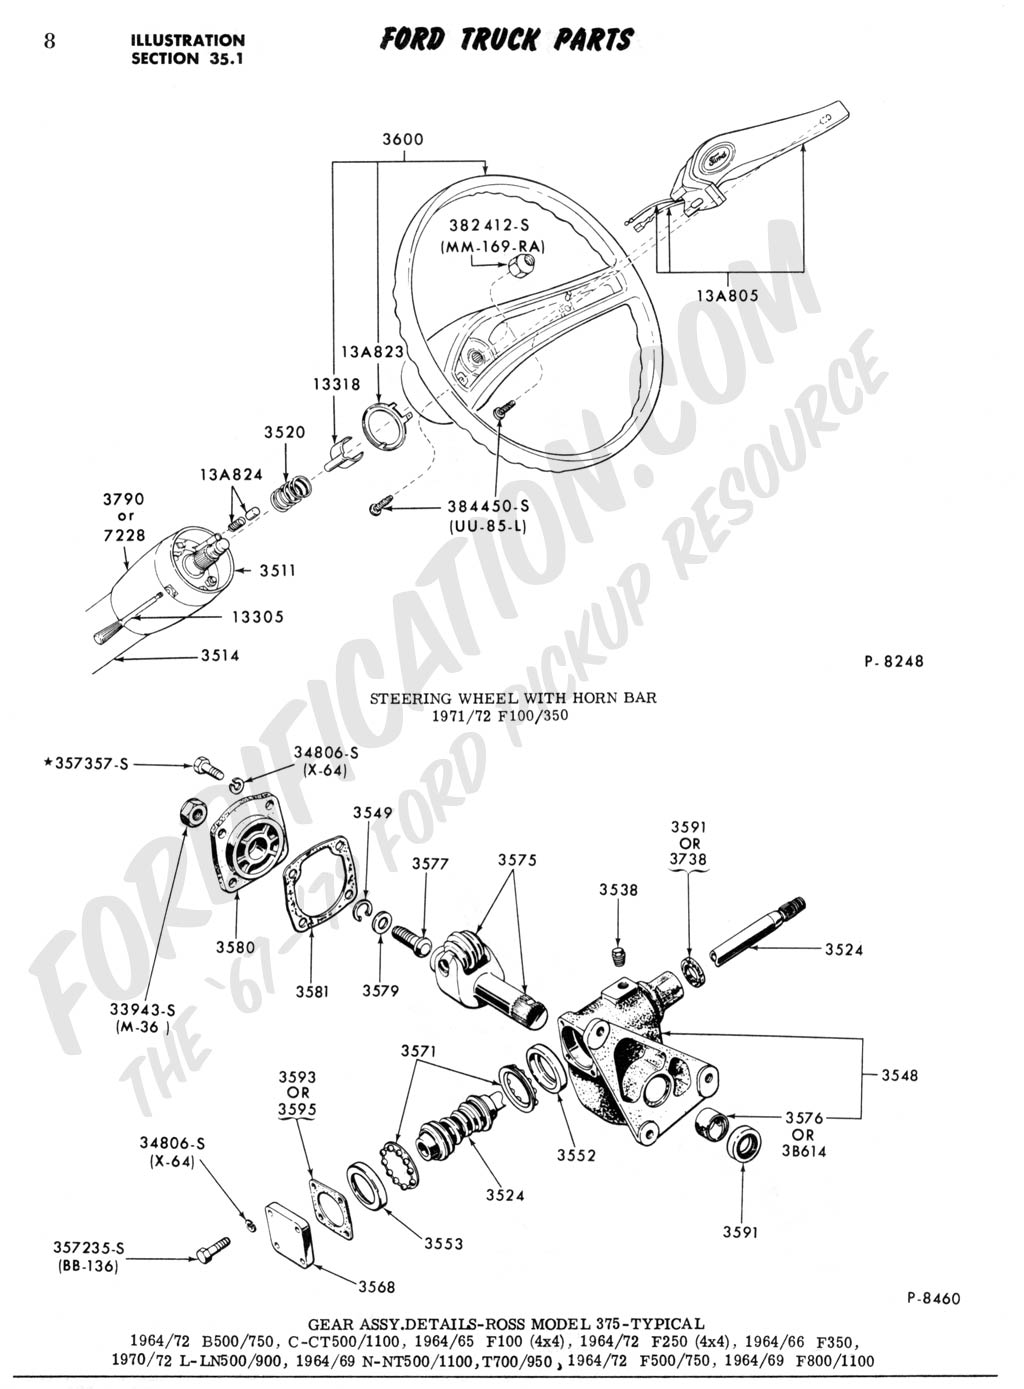 1968 Ford Truck Steering Column Wiring Diagram Diagrams 64 Mustang Turn Signal Auto 68 F100 Blinker